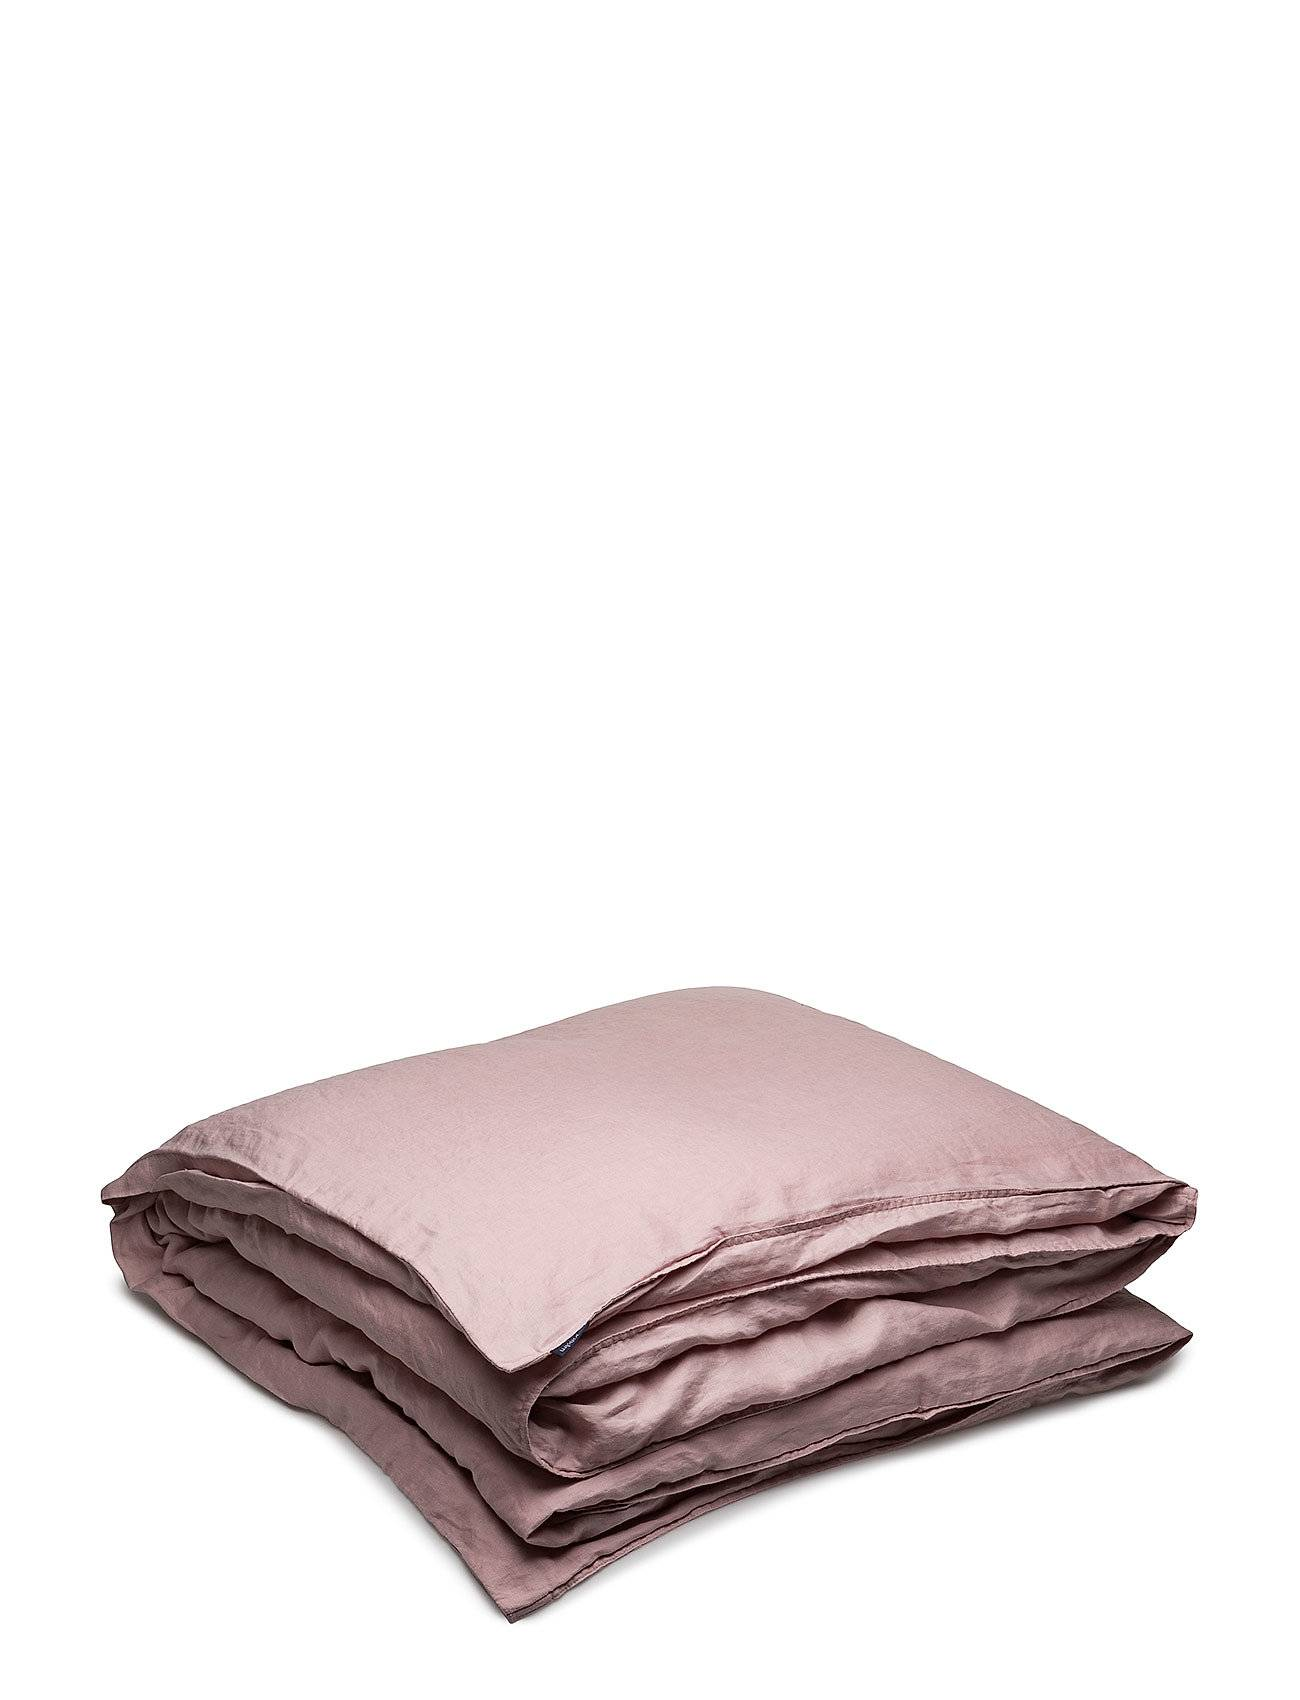 Gripsholm Quilt Cover Washed Linen Home Bedroom Bedding Duvetcovers Vaaleanpunainen Gripsholm